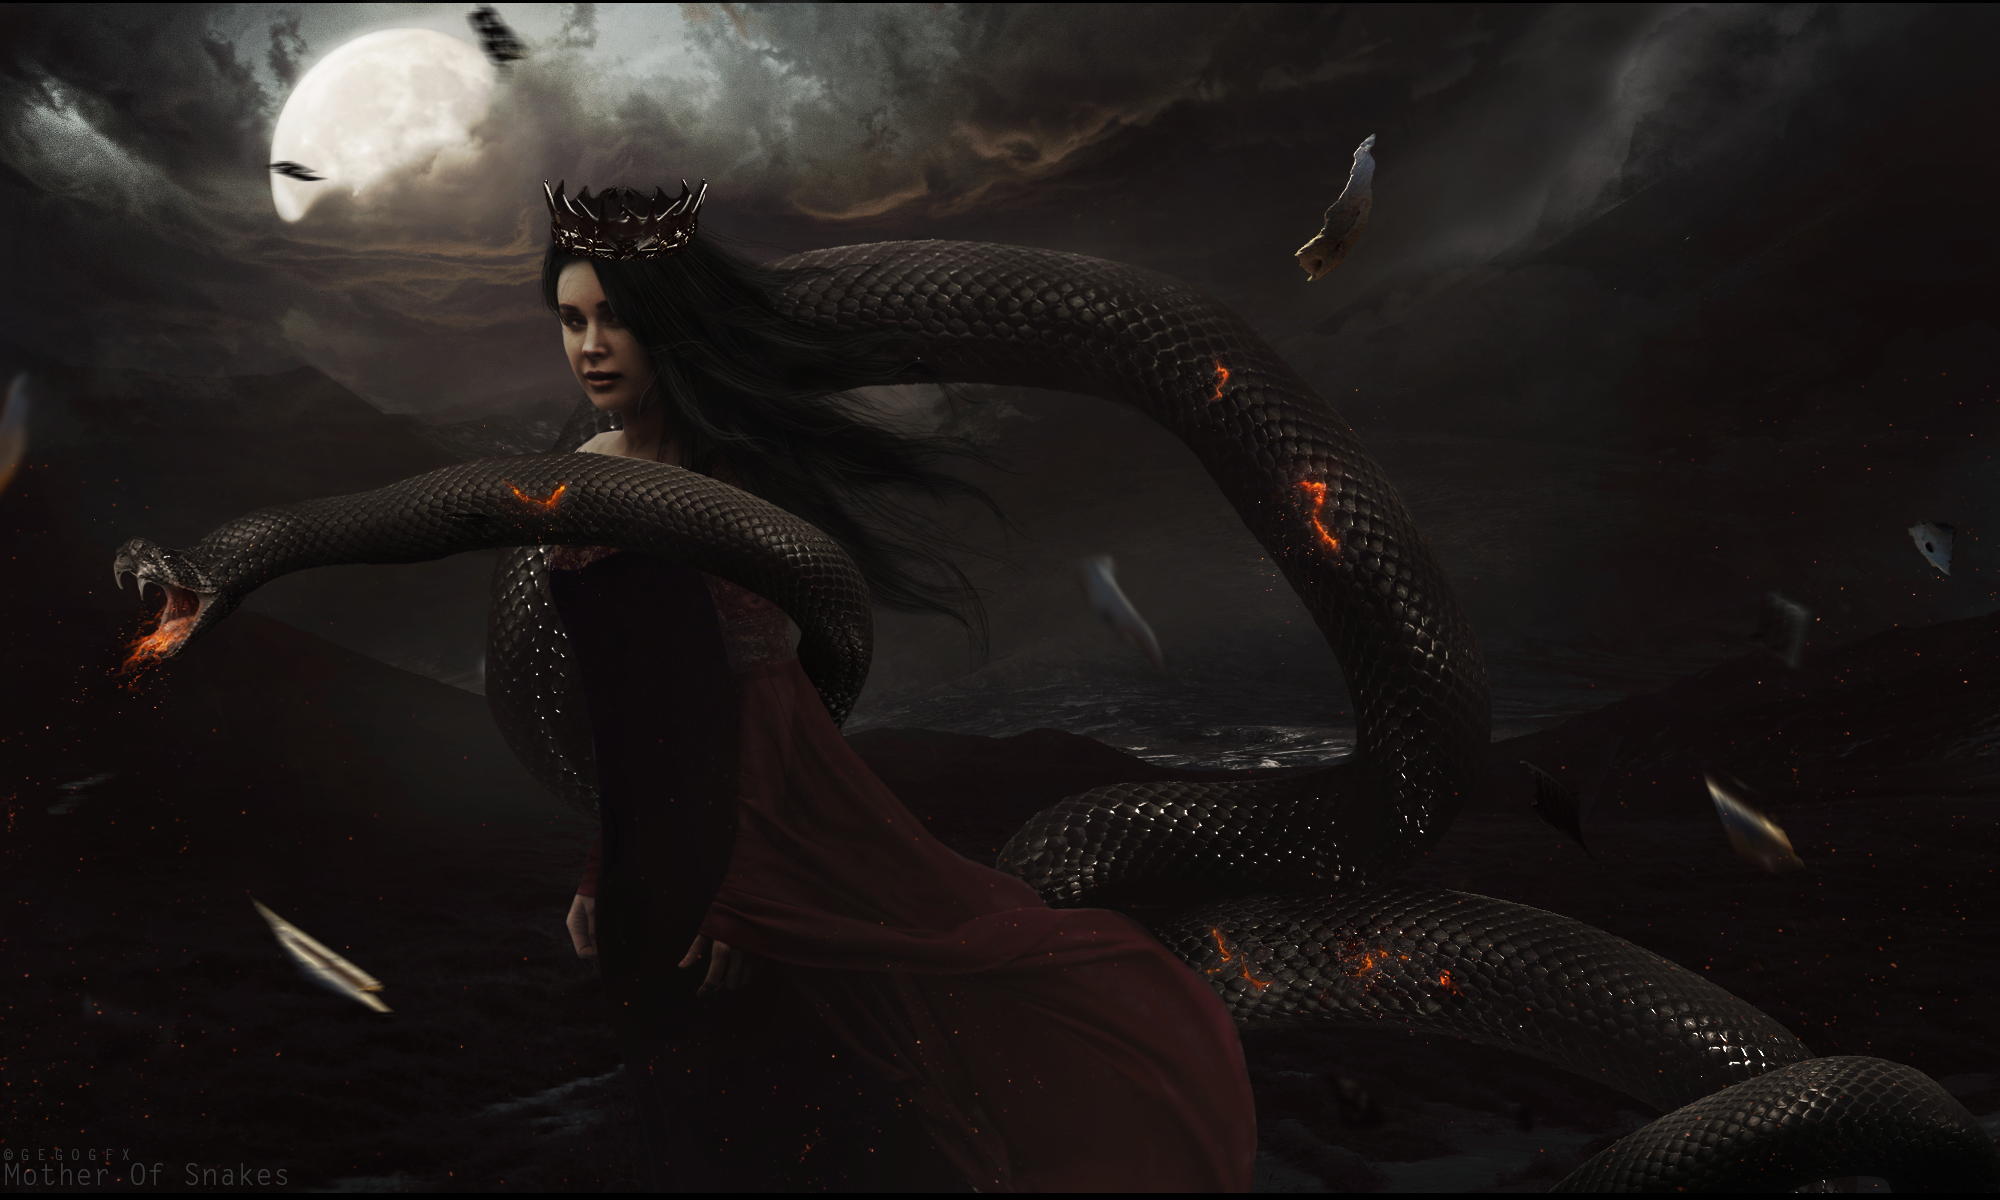 Mother of Snakes by Gedogfx